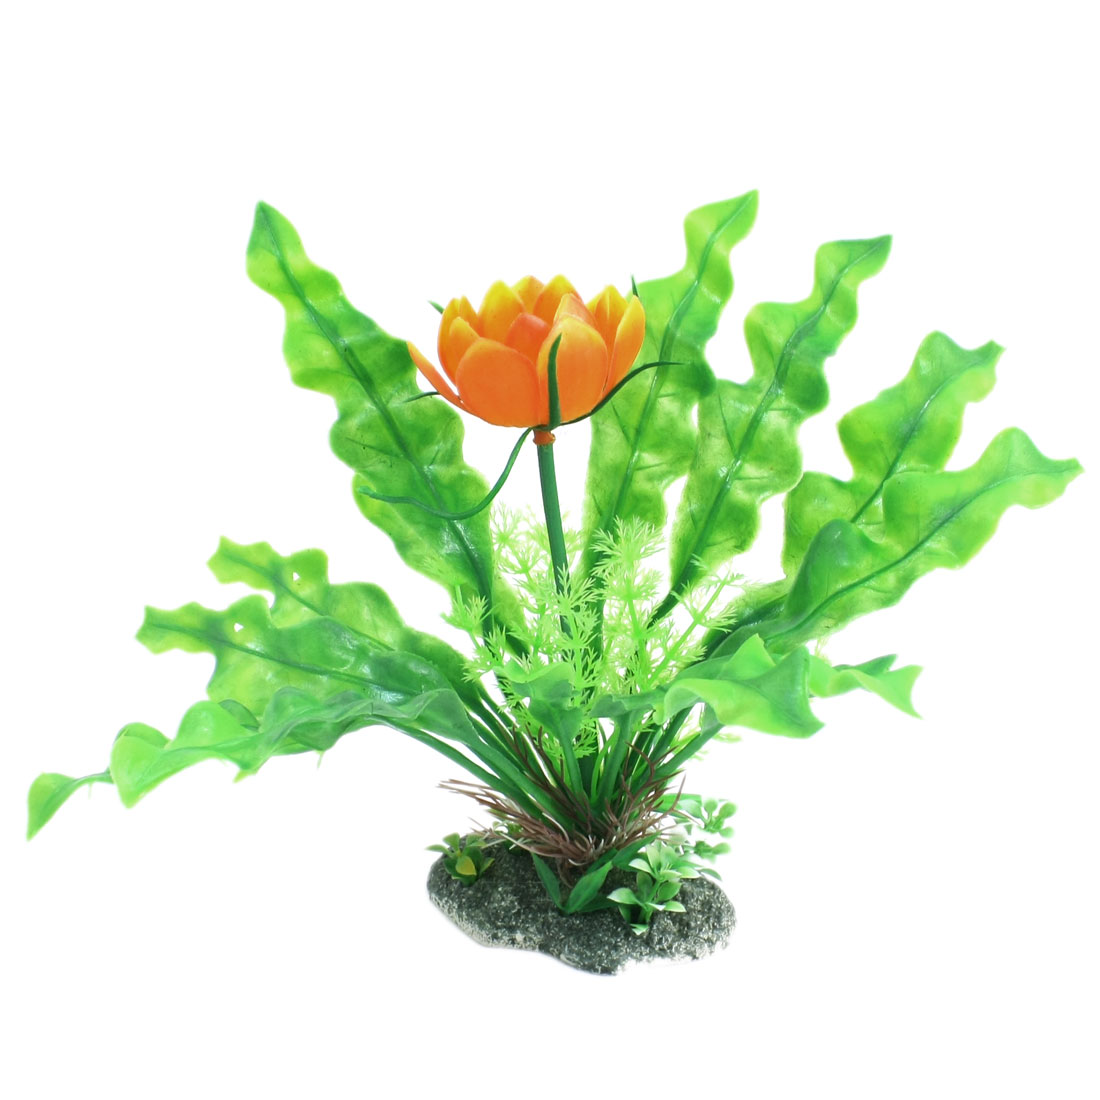 20cm High Emulational Green Plastic Water Plant Glass for Fish Tank Aquarium Decoration